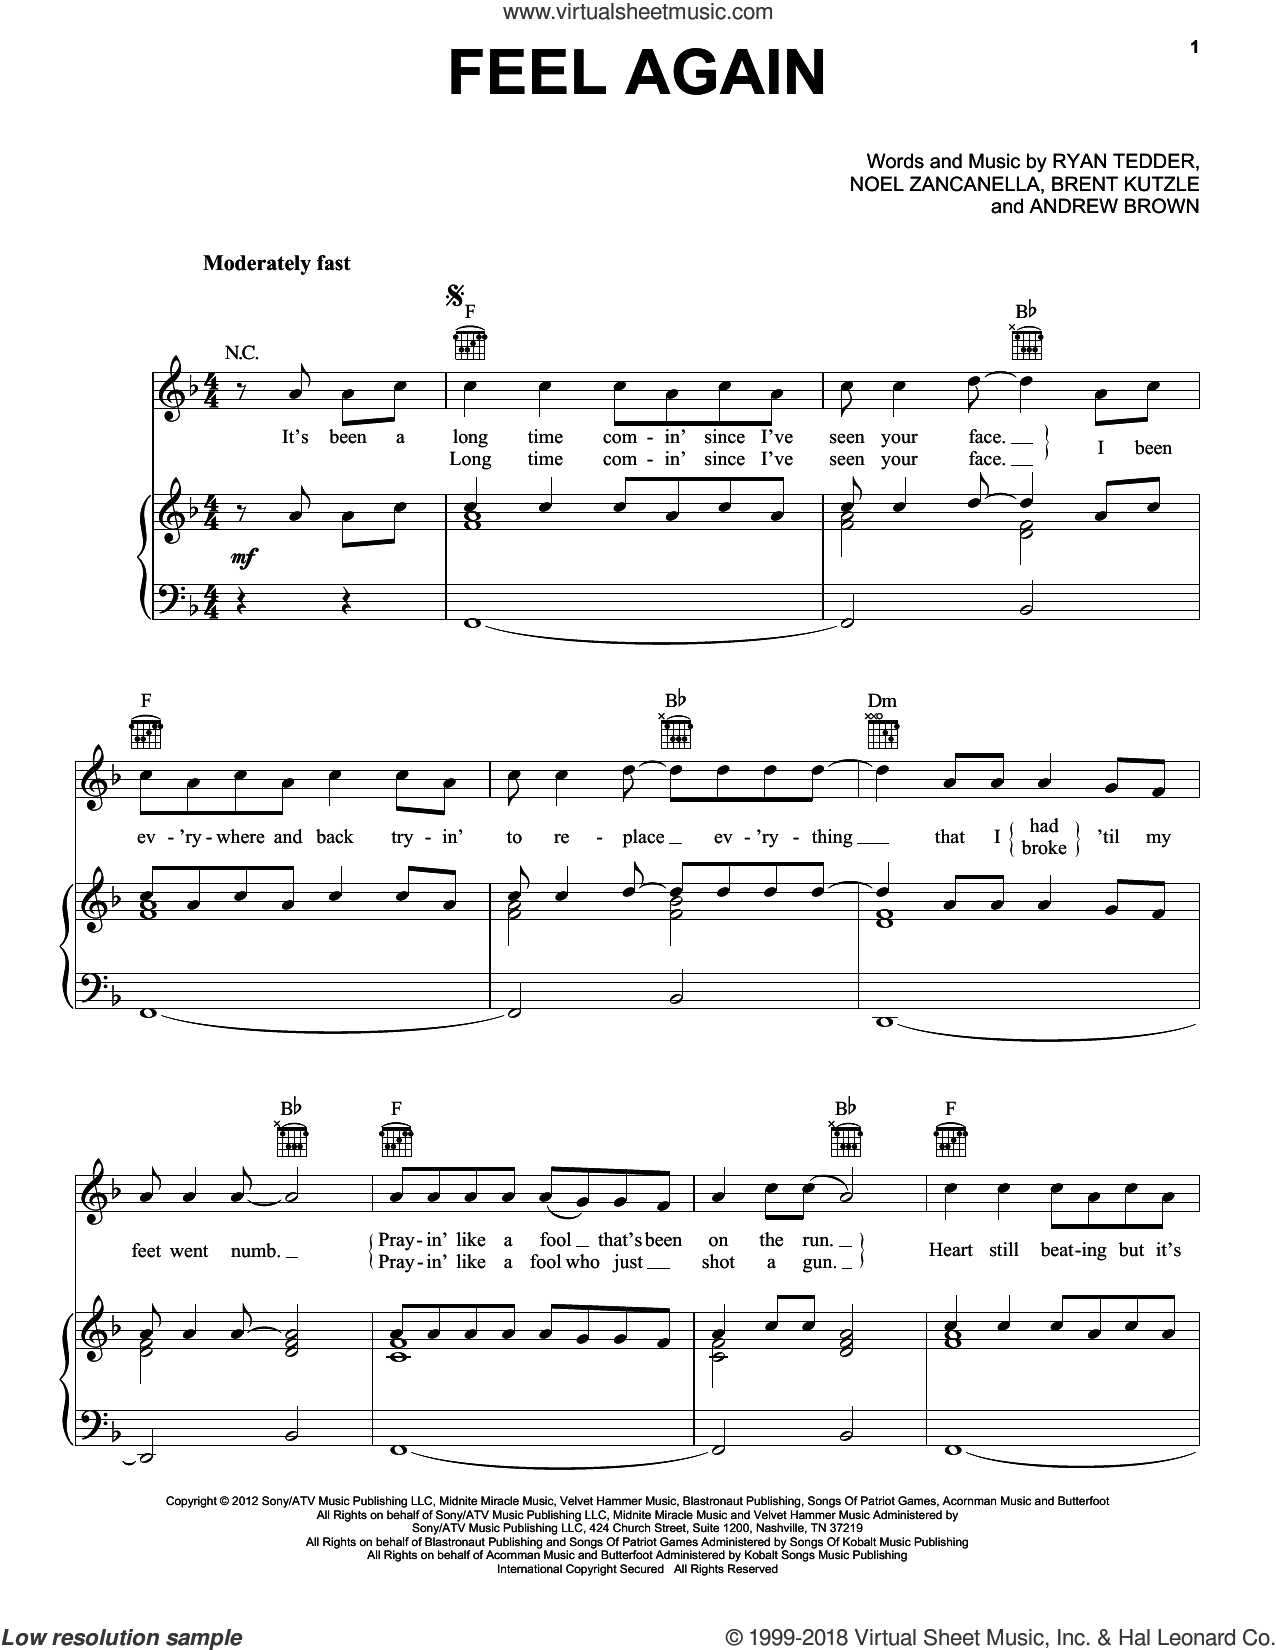 Feel Again sheet music for voice, piano or guitar by OneRepublic, Andrew Brown, Brent Kutzle, Noel Zancanella and Ryan Tedder, intermediate skill level